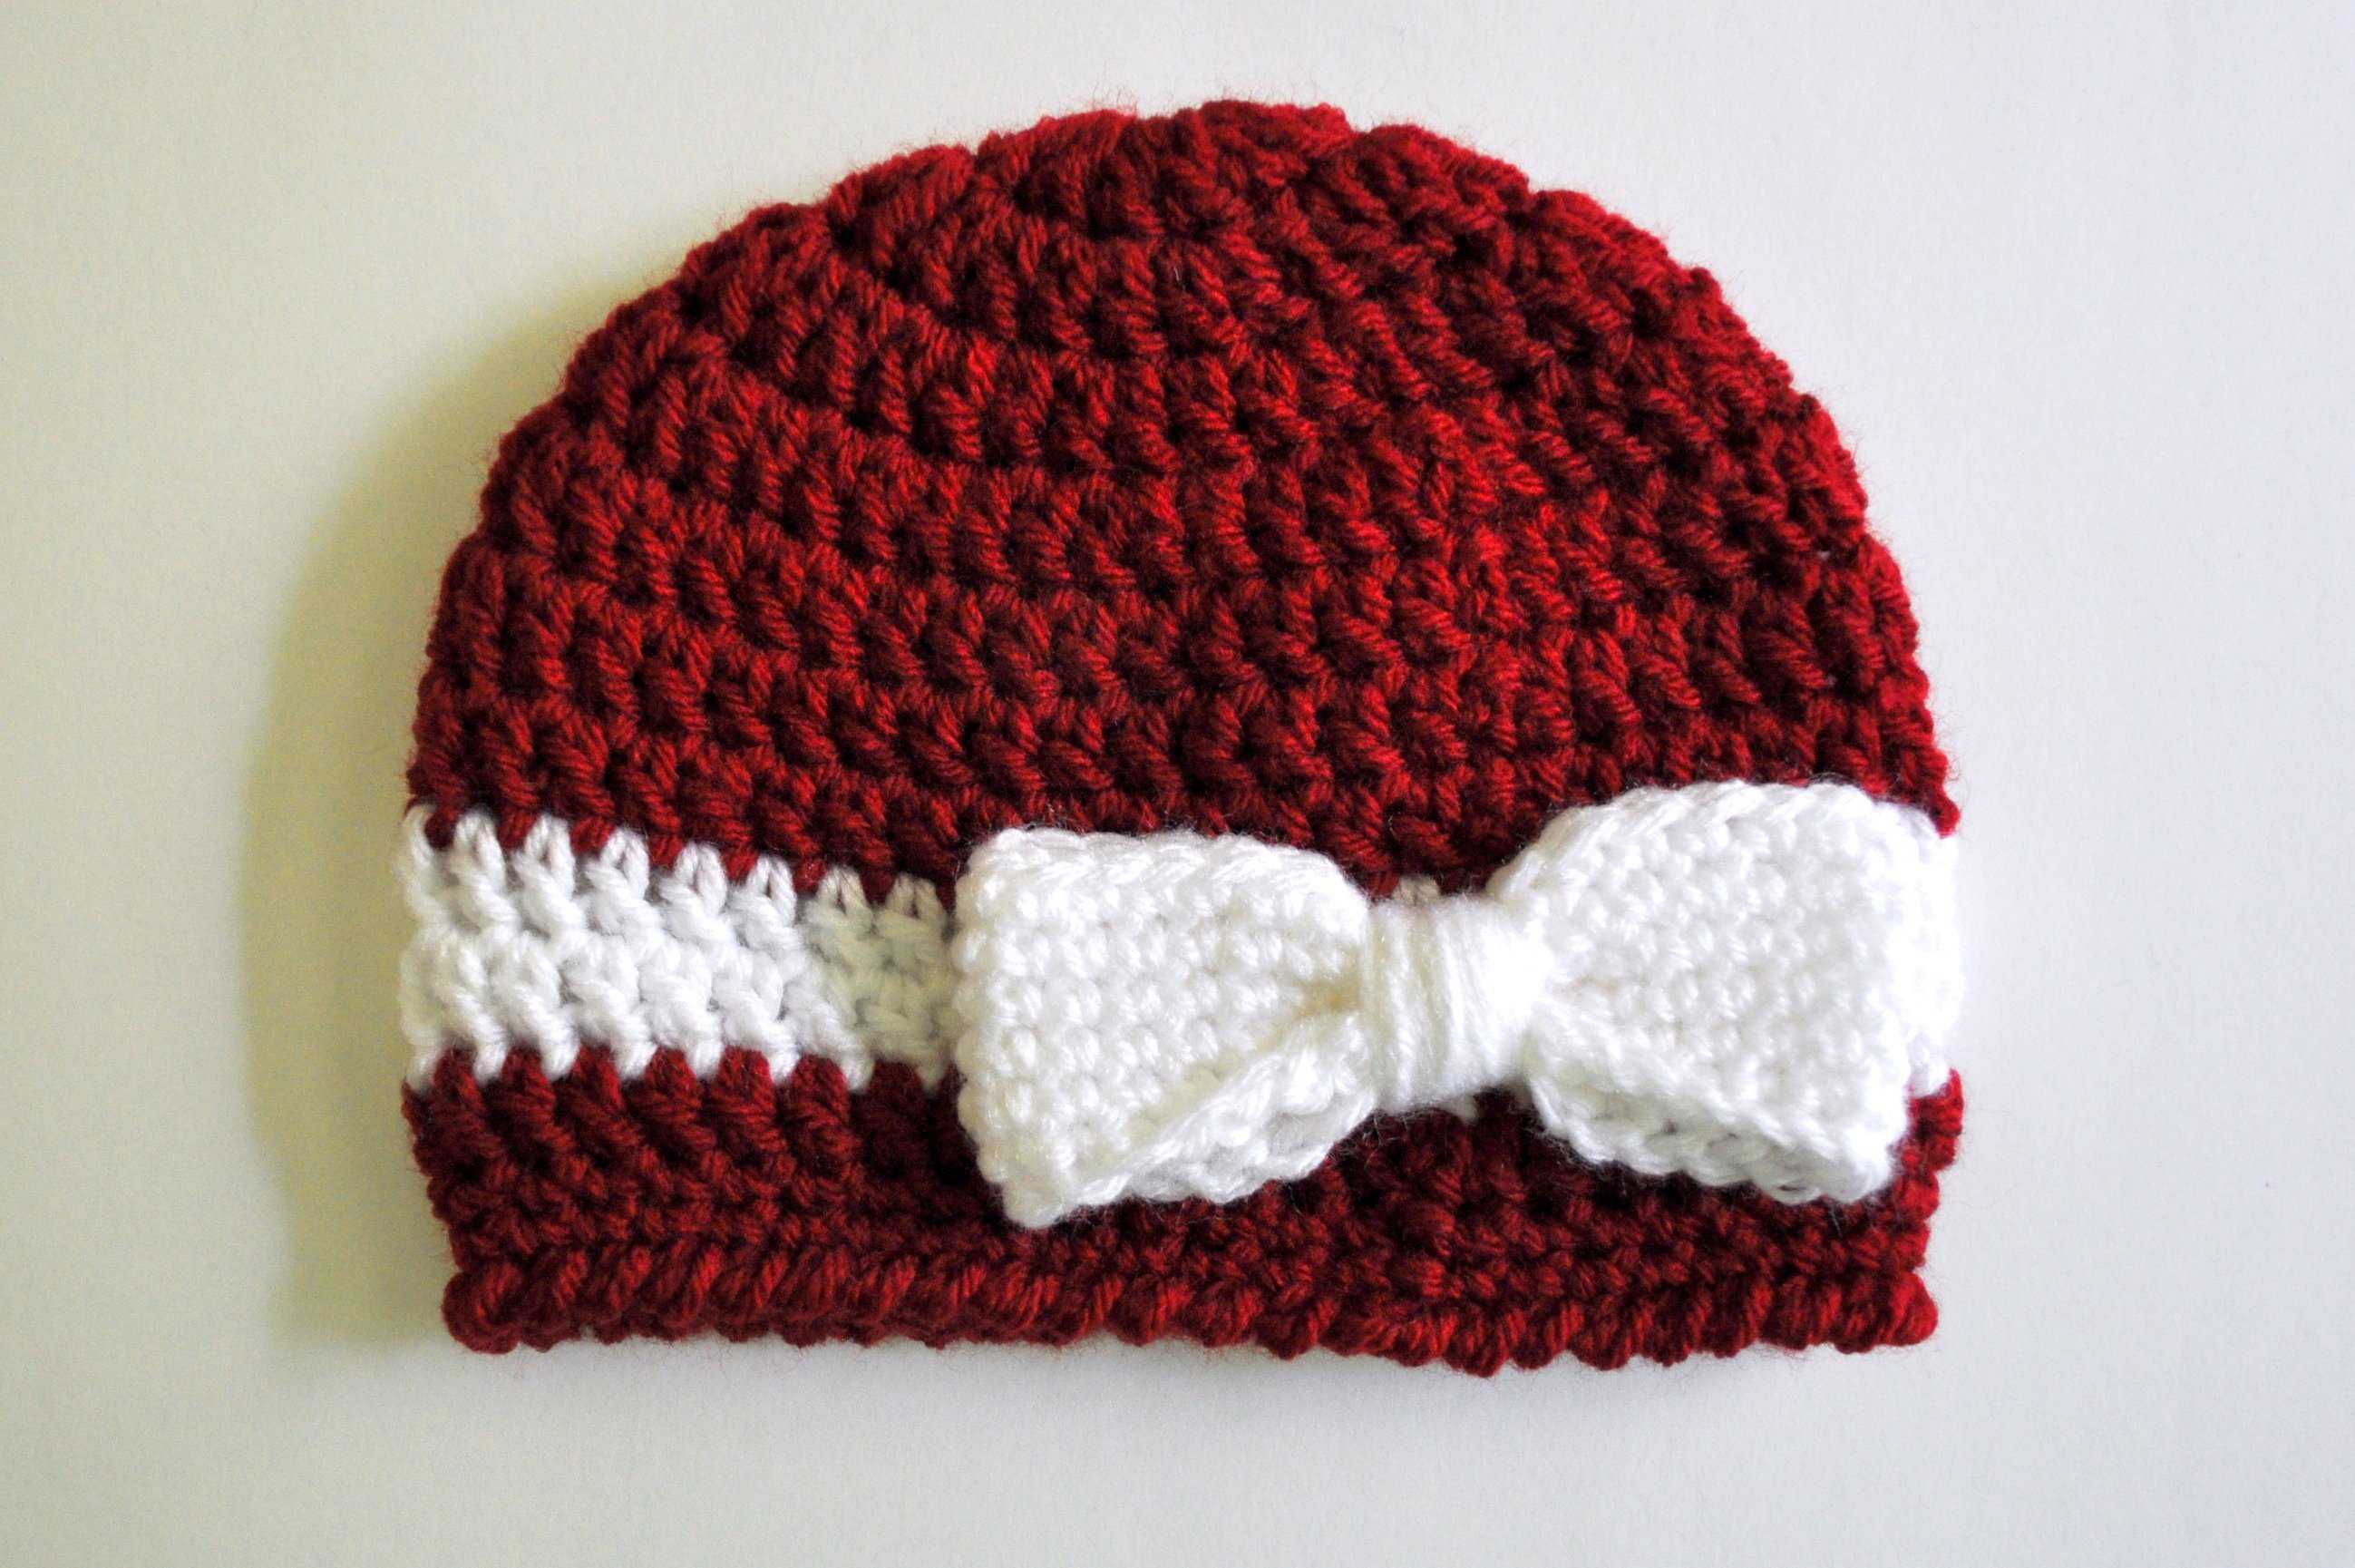 Crochet Hat Patterns : 25 Easy Crochet Bow Patterns Guide Patterns